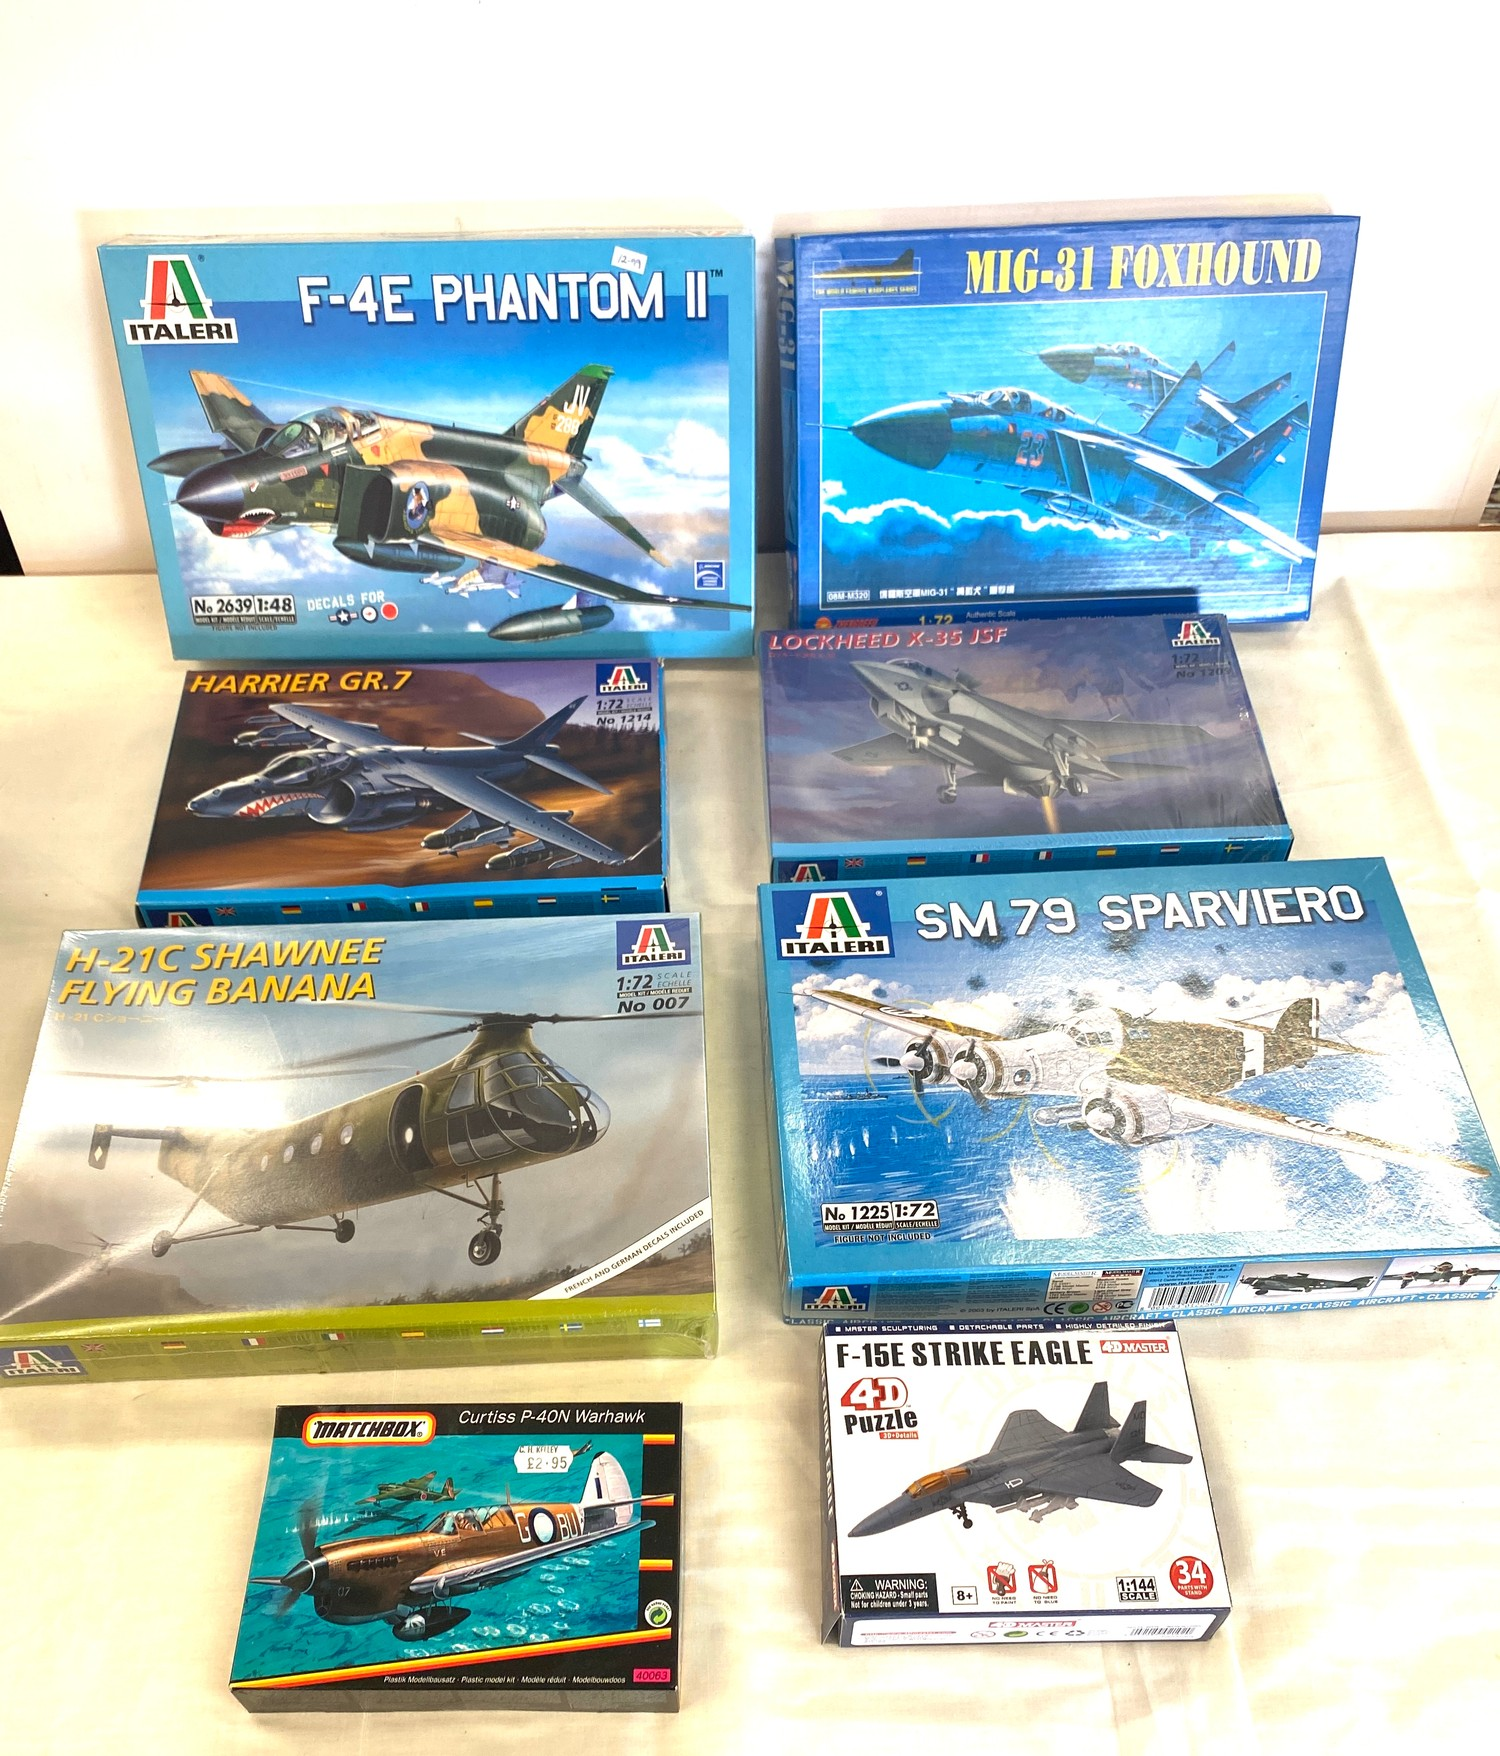 Selection of 8 boxed craft models to include, Shawnee flying banana, Sparviero SM79, Lockheed x-35